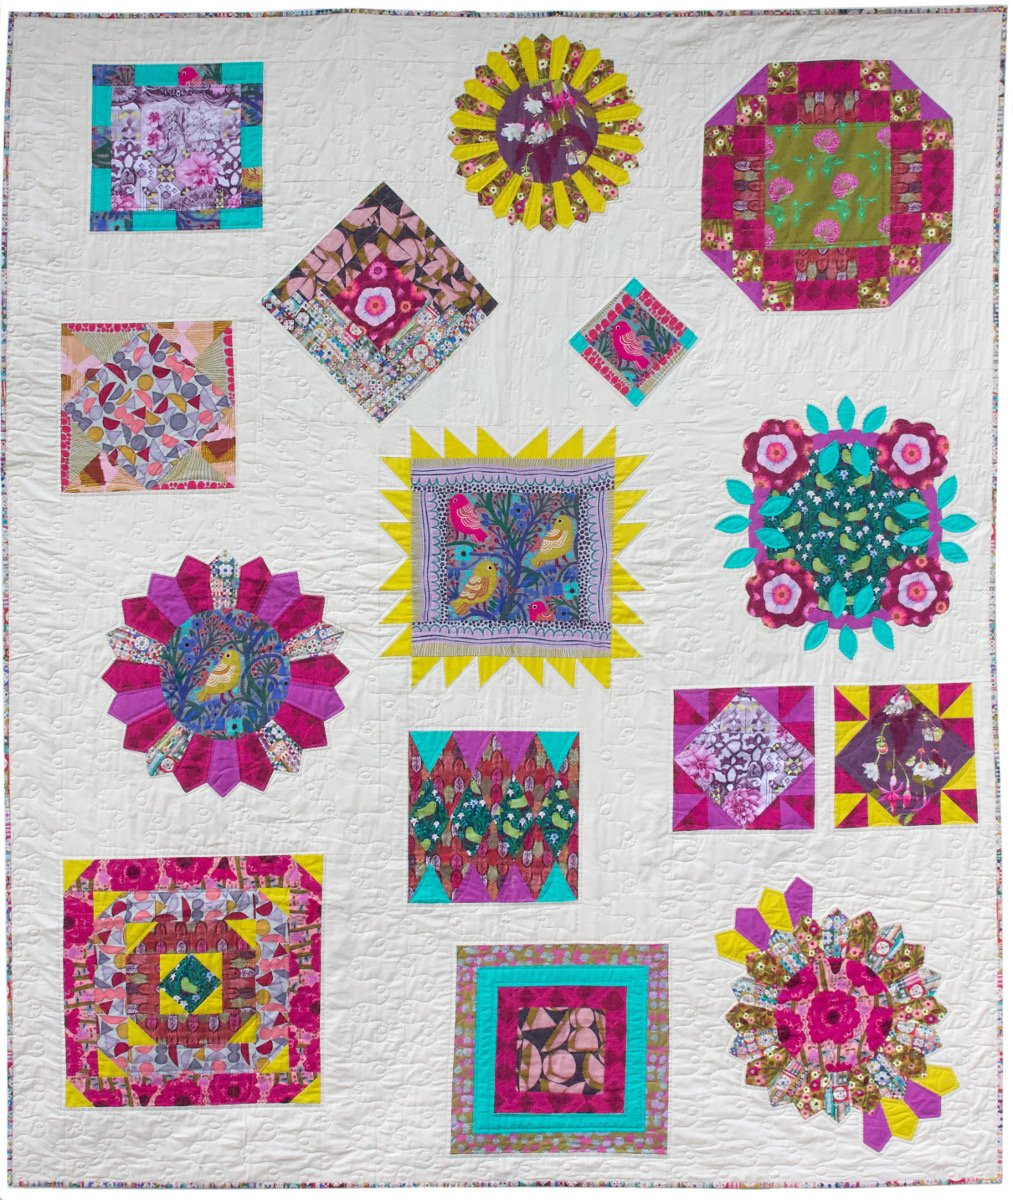 Pathways Quilt Pattern - PDF DOWNLOAD - Designed by Anna Maria Horner and Pam Matthews